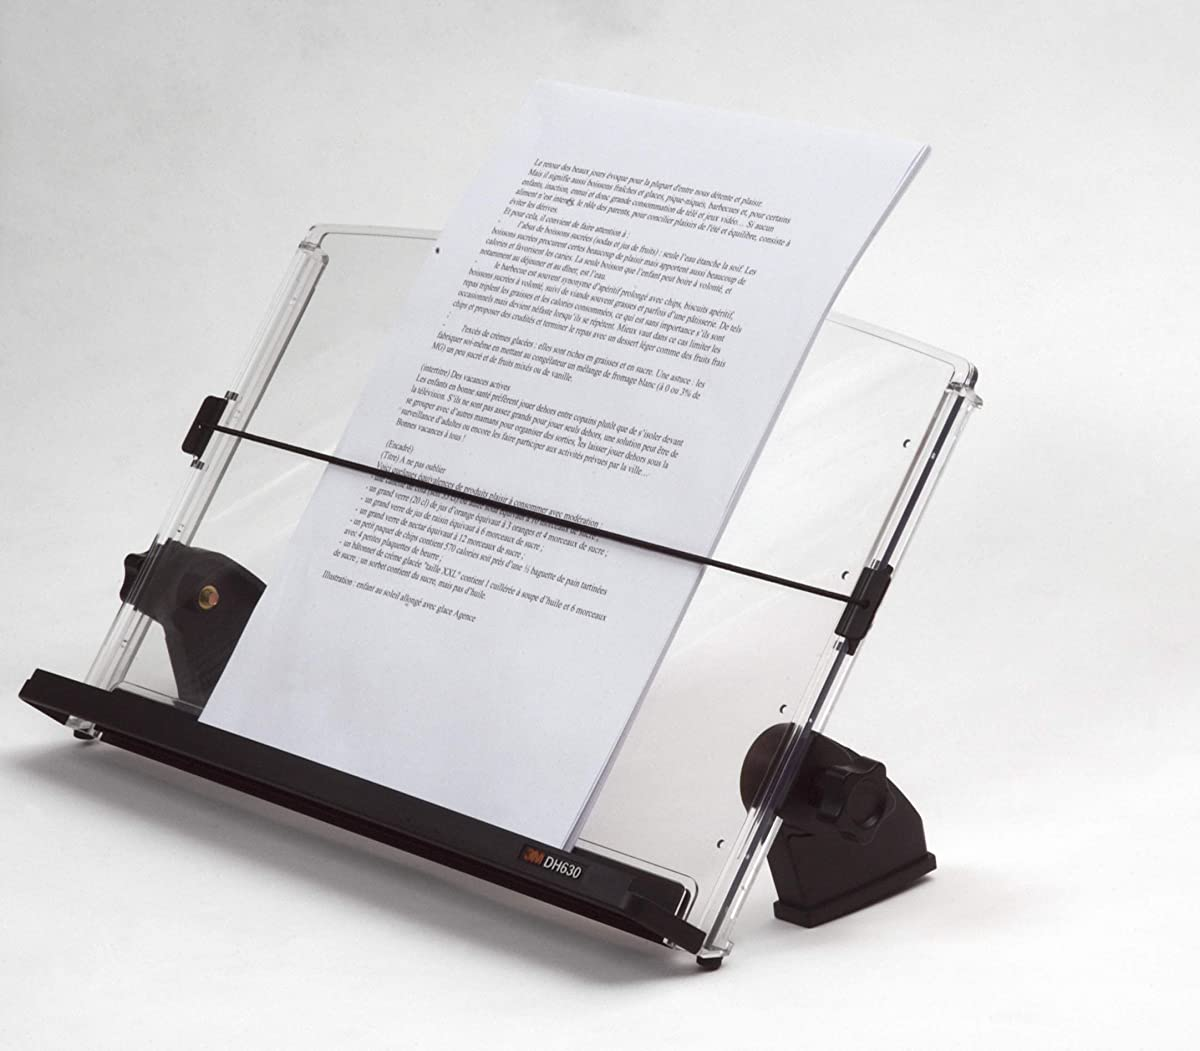 """3M Adjustable Document Copy Holder, In-line with Monitor Minimizing Head and Neck Movement, 150 Sheet Capacity Holds Sheets to Books, Elastic Line Guide Keeps Pages Open, 14"""" Wide, Black (DH630)"""